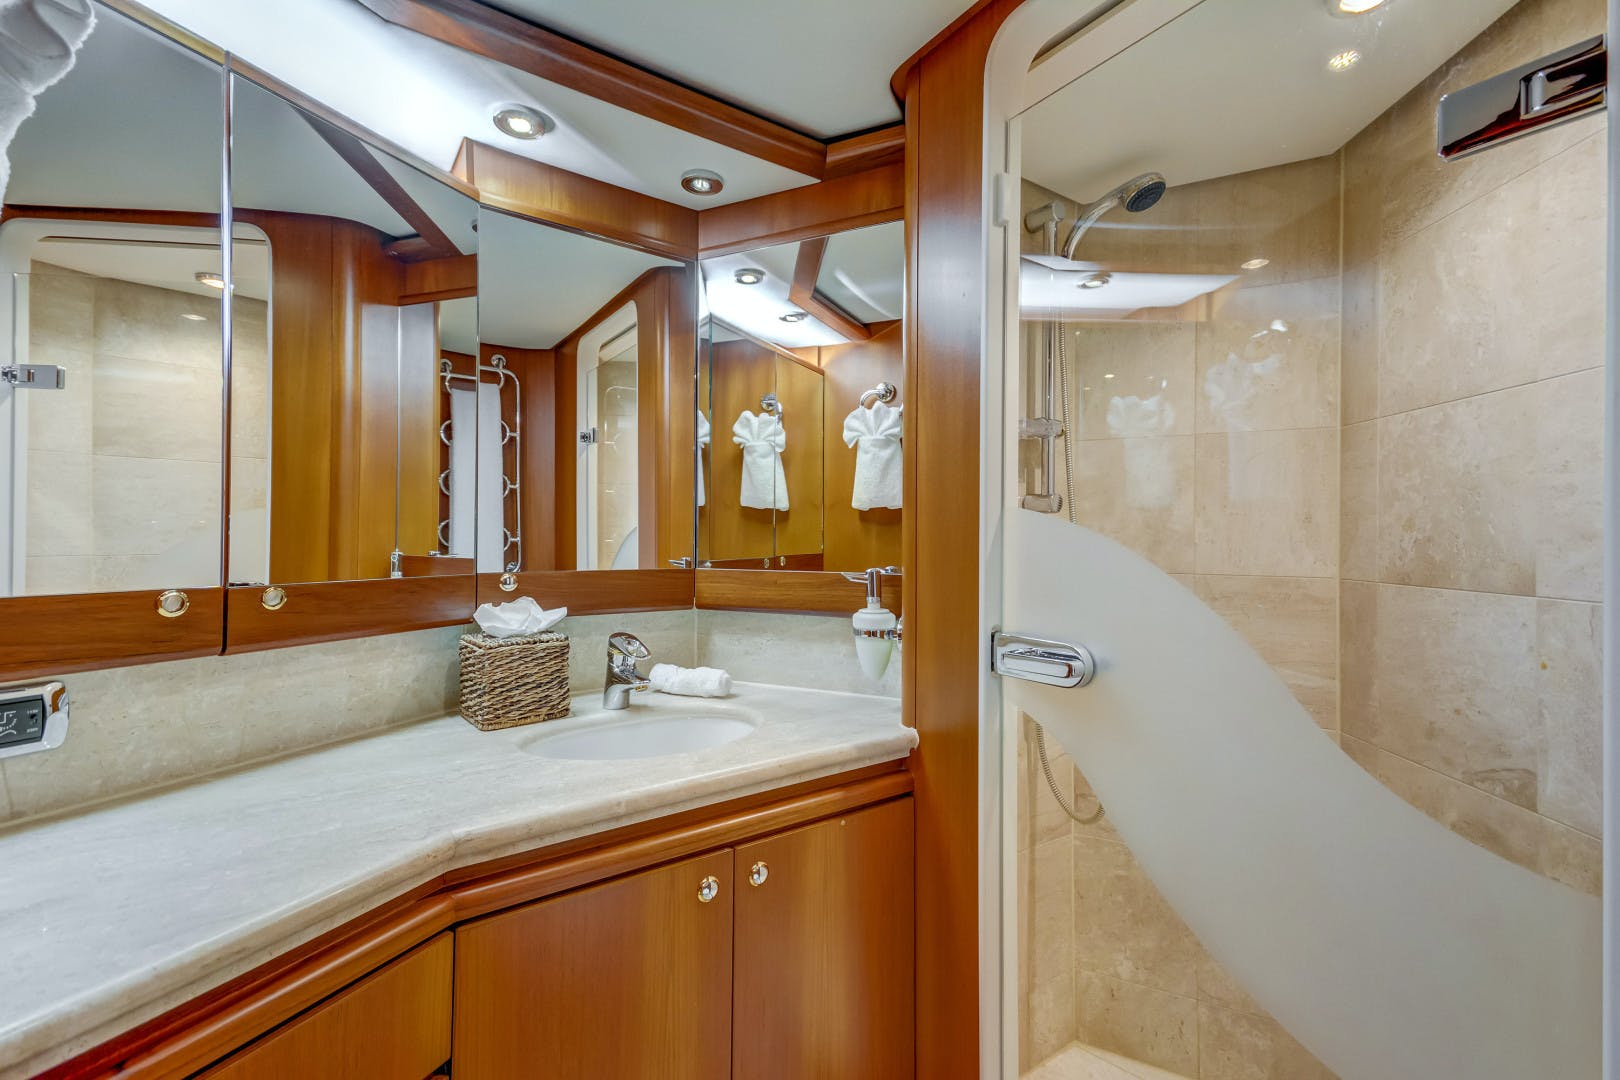 2002 Kuipers Woudsend 84' Raised Pilothouse LRC GUSTO | Picture 5 of 31